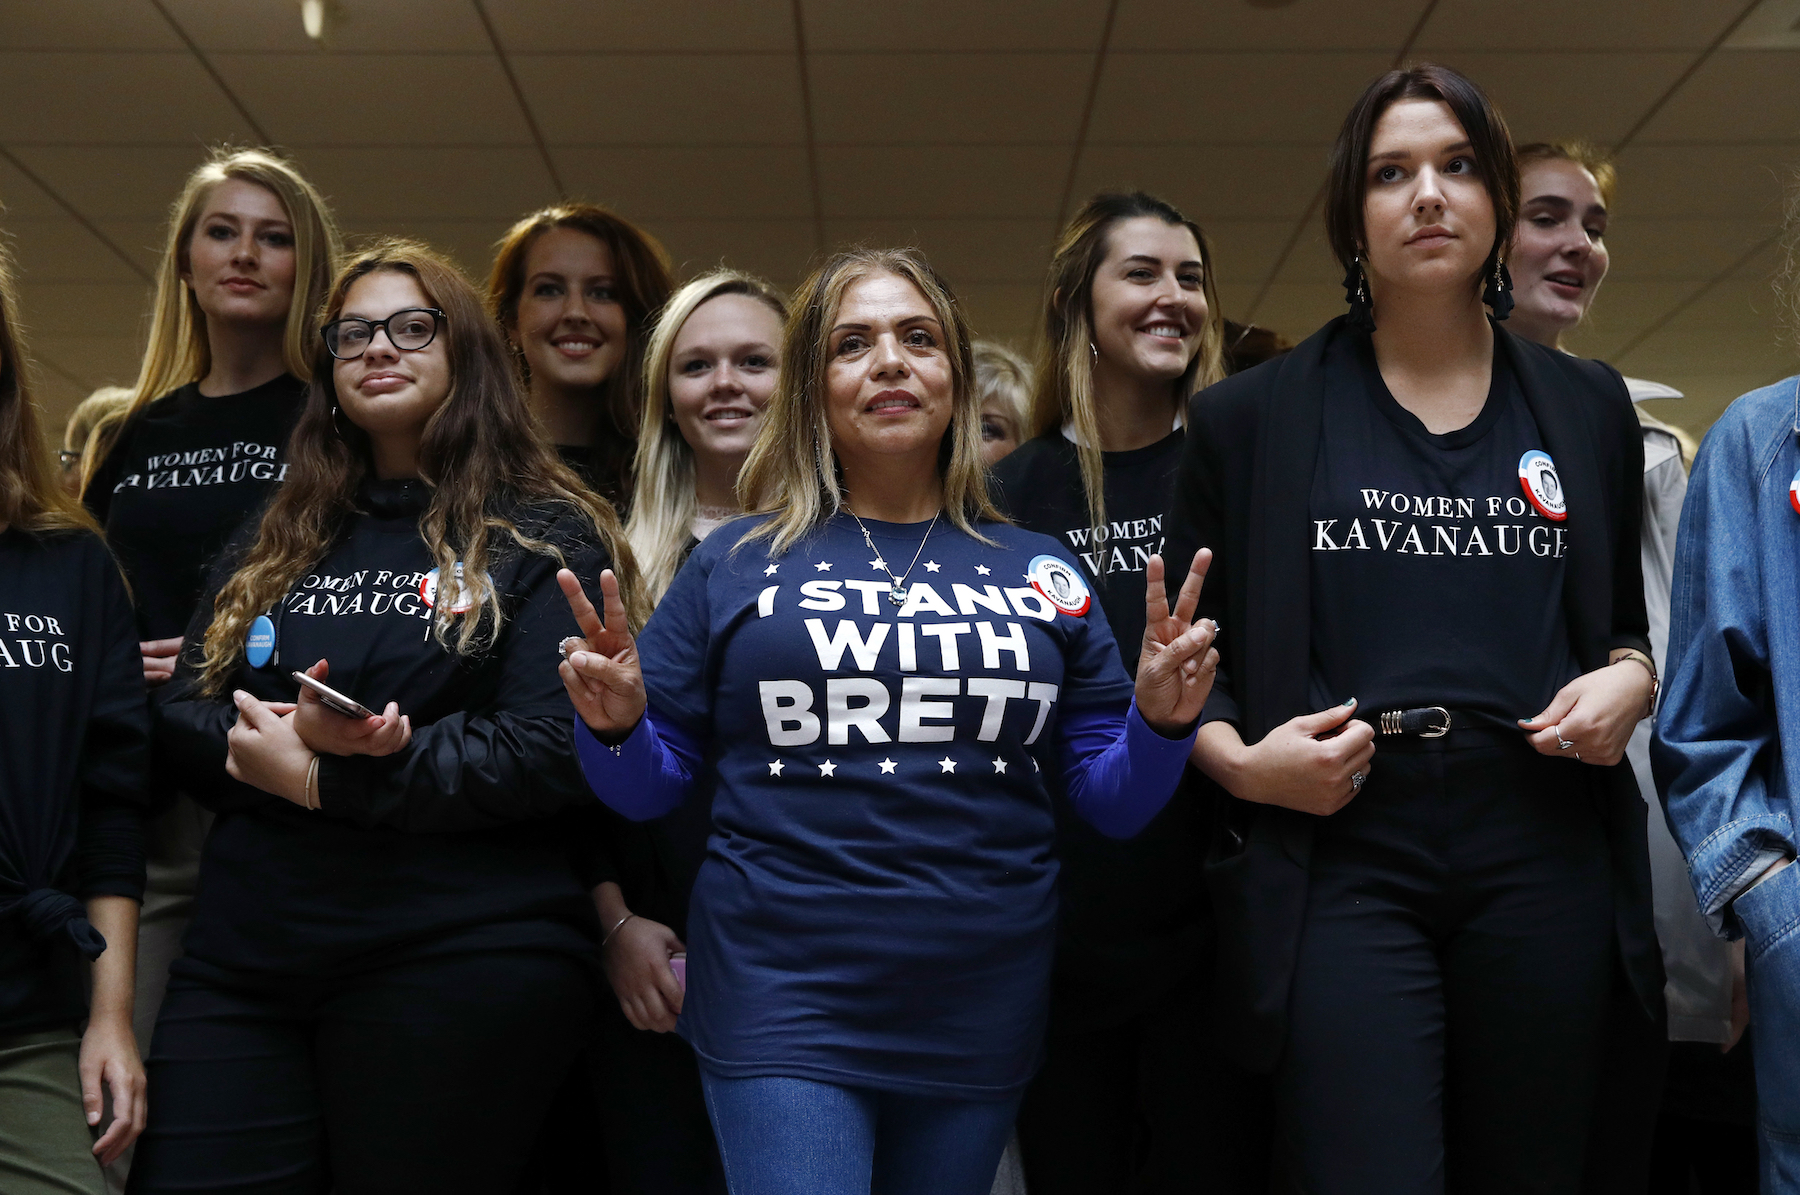 "<div class=""meta image-caption""><div class=""origin-logo origin-image ap""><span>AP</span></div><span class=""caption-text"">Supporters of Supreme Court nominee Brett Kavanaugh gather inside the Hart Senate Office Building on Capitol Hill in Washington, Thursday, Sept. 27, 2018. (AP Photo/Patrick Semansky)</span></div>"